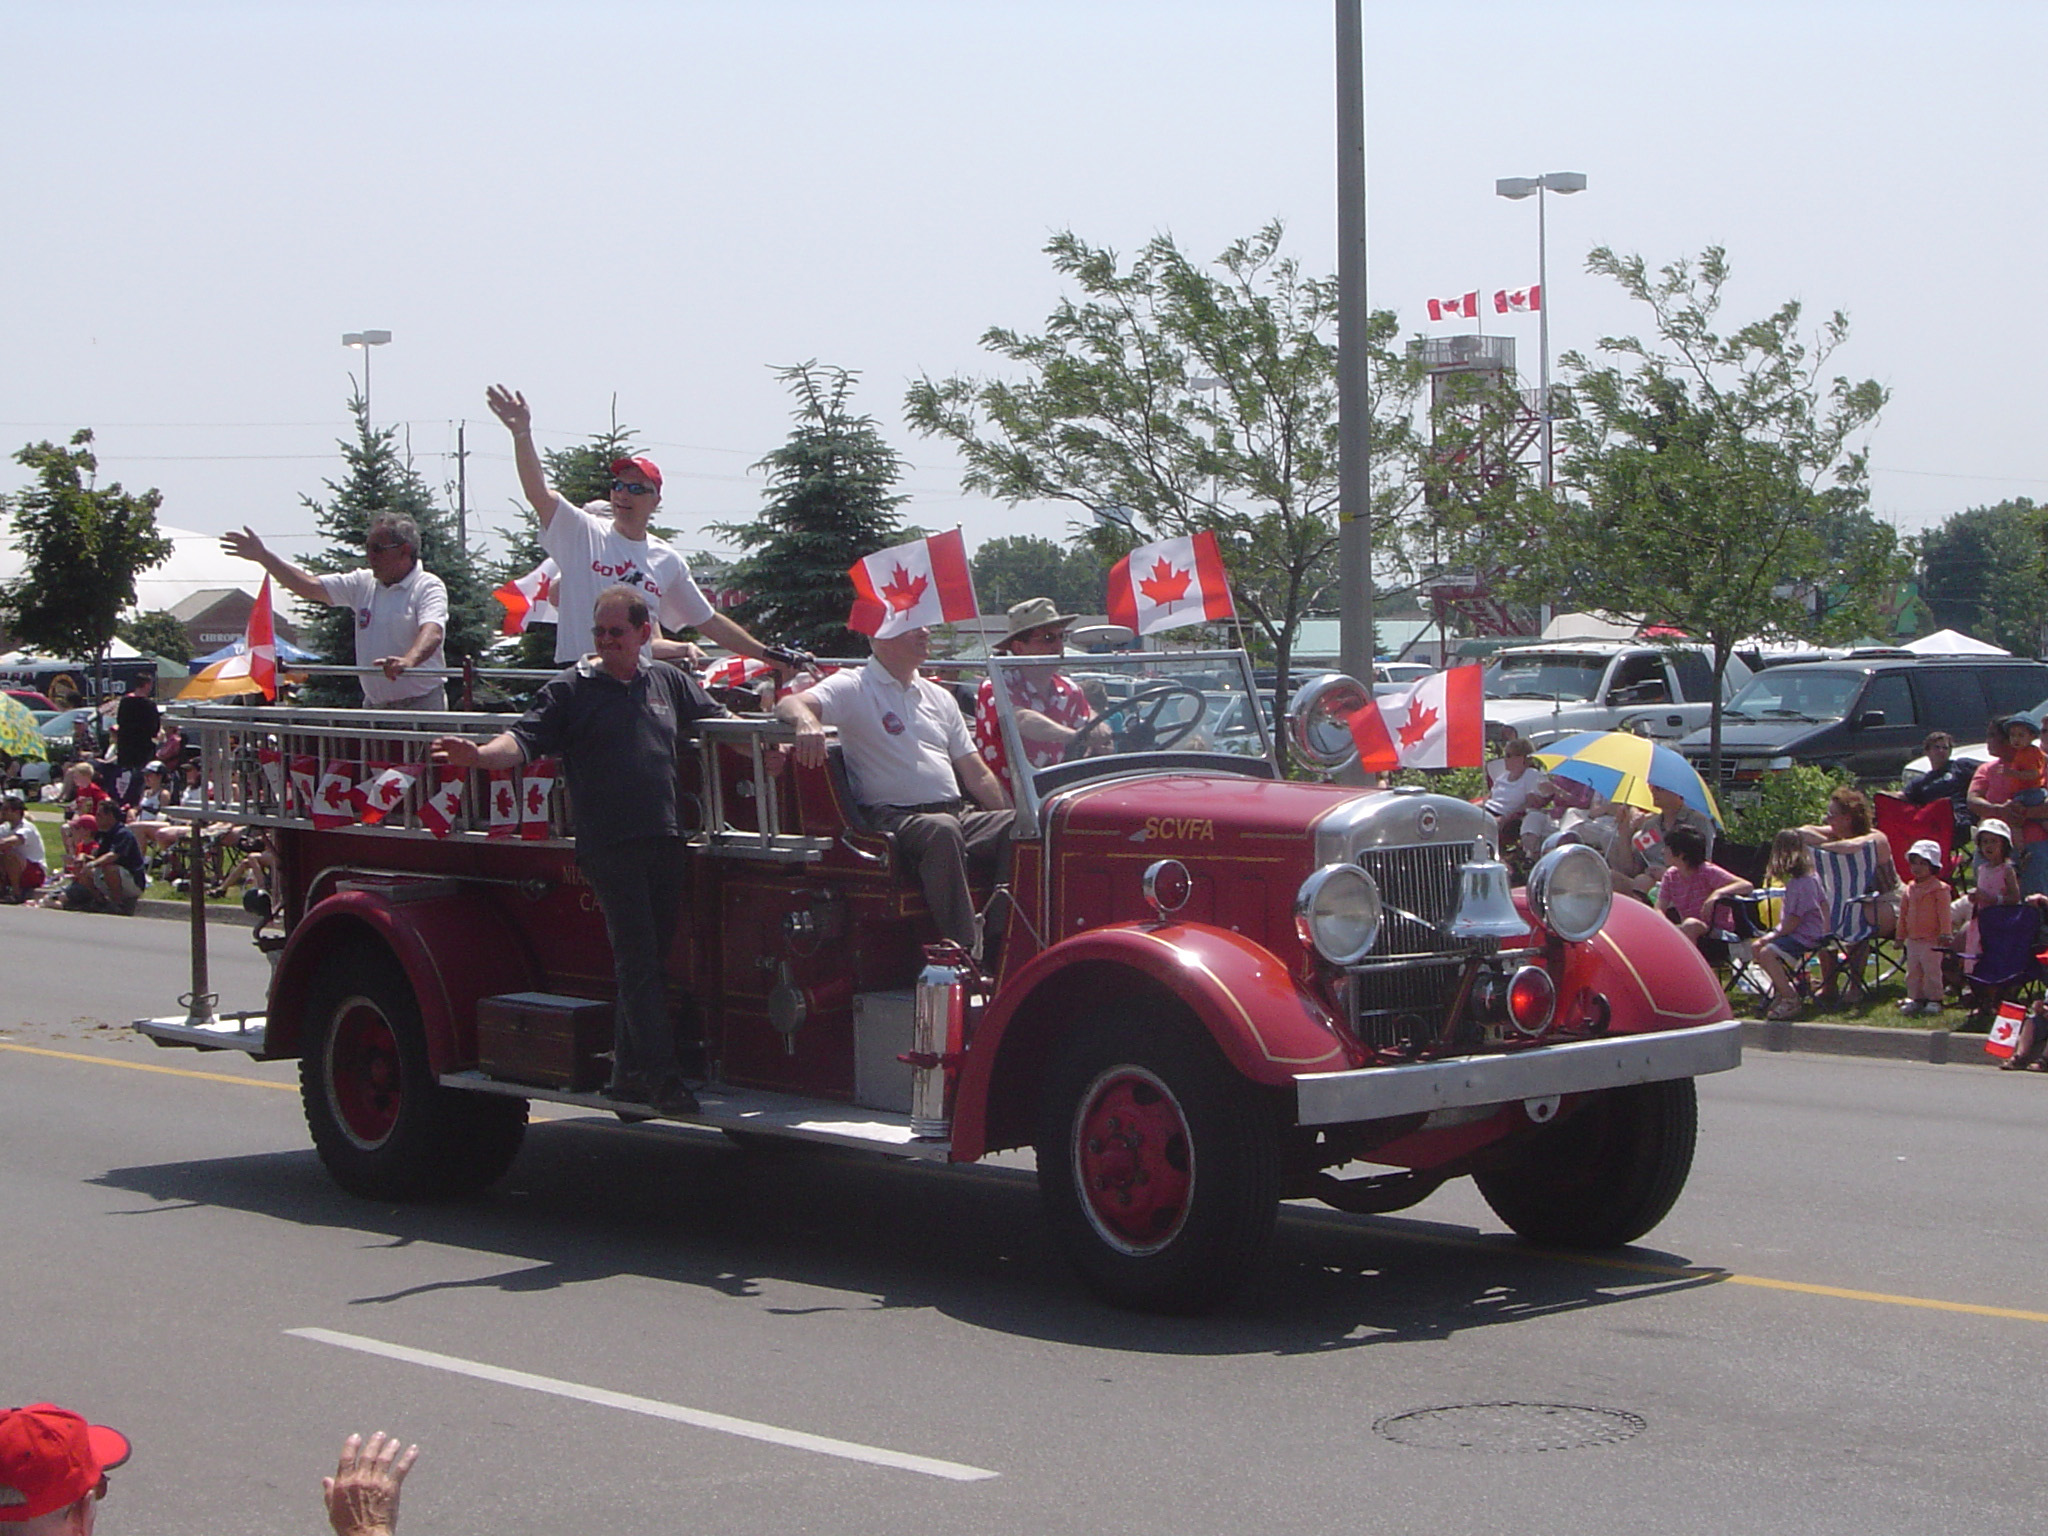 Historic vintage Canadian fire truck driving through the streets with firefighters waving at seated crowds watching the parade